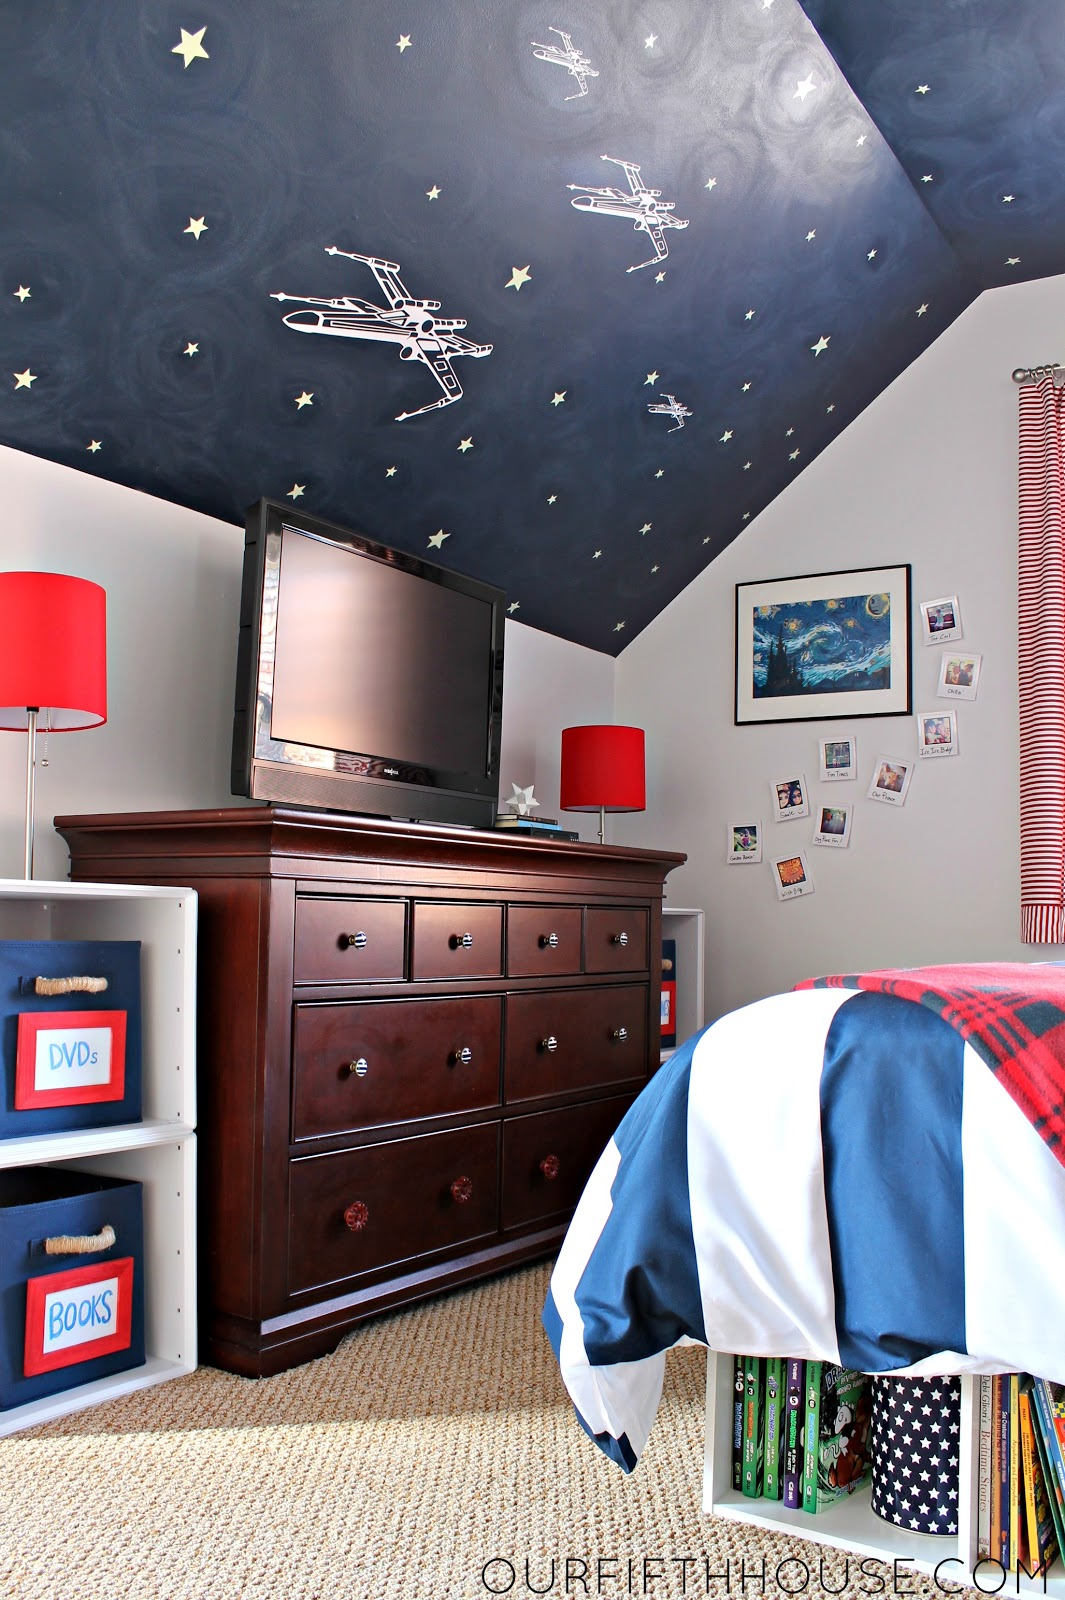 10 year old bedroom ideas photo 4 design your home for 10 year old boy bedroom ideas